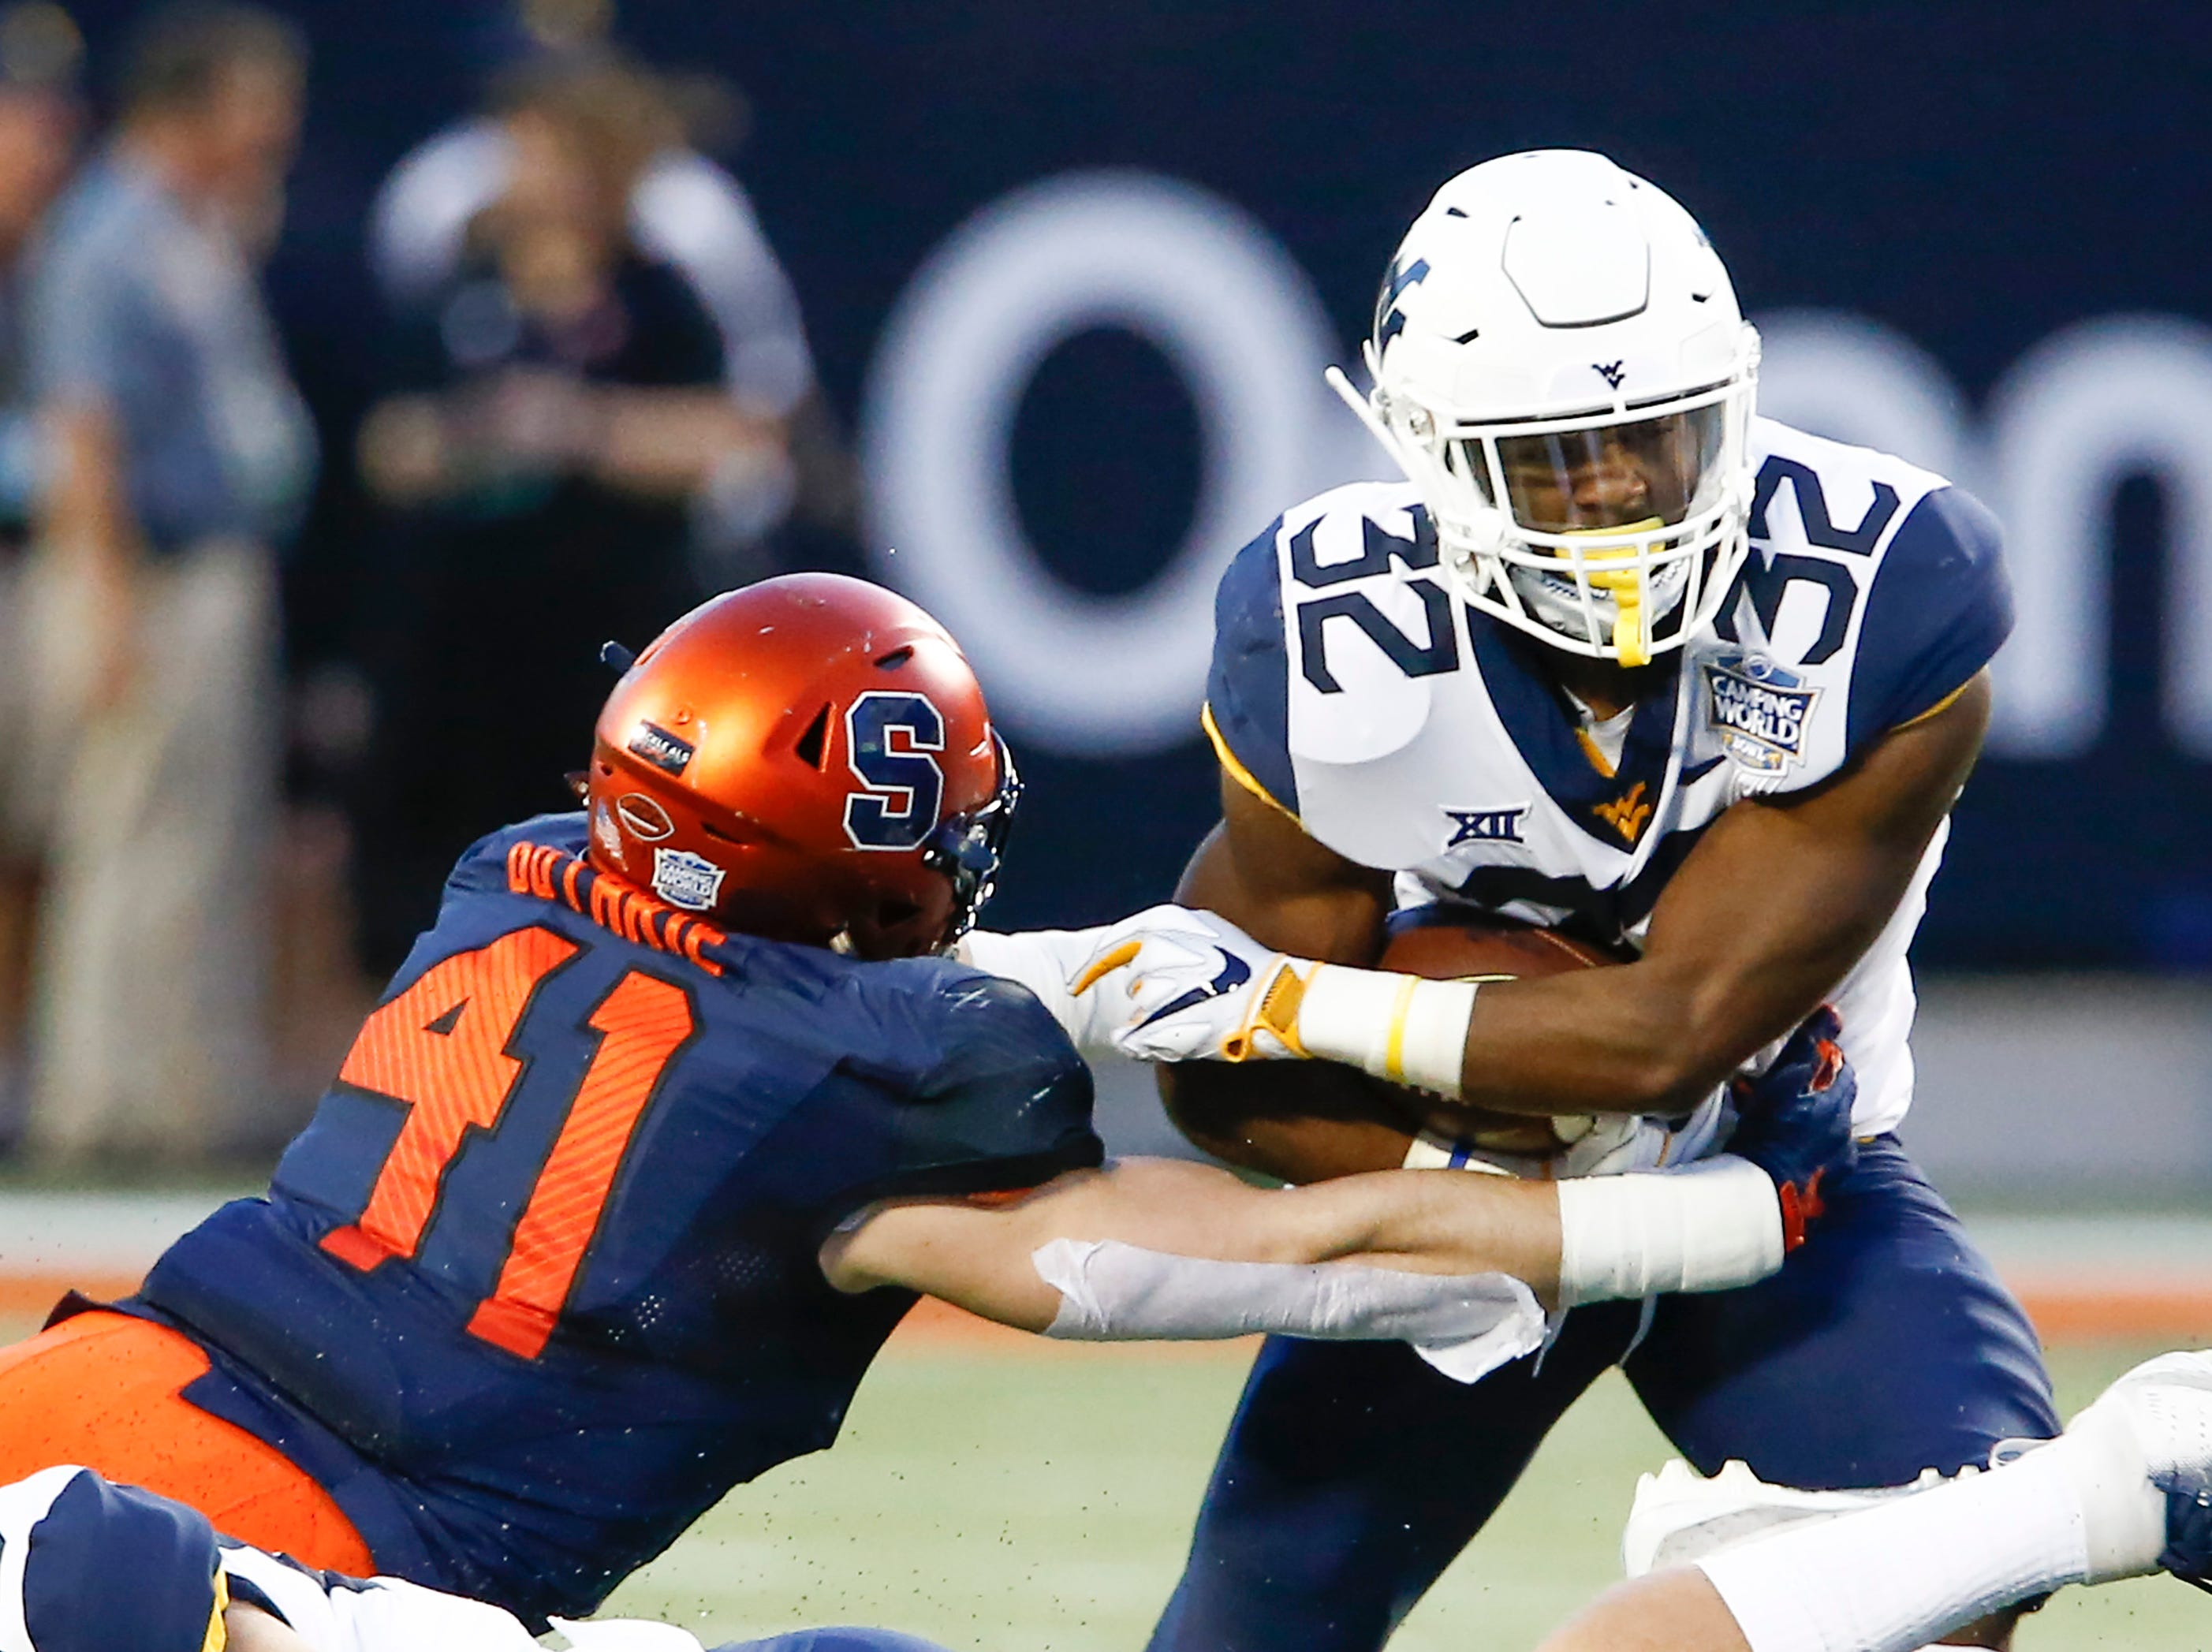 Syracuse Orange linebacker Ryan Guthrie (41) tackles West Virginia Mountaineers running back Martell Pettaway (32) during the first quarter of the Camping World Bowl.